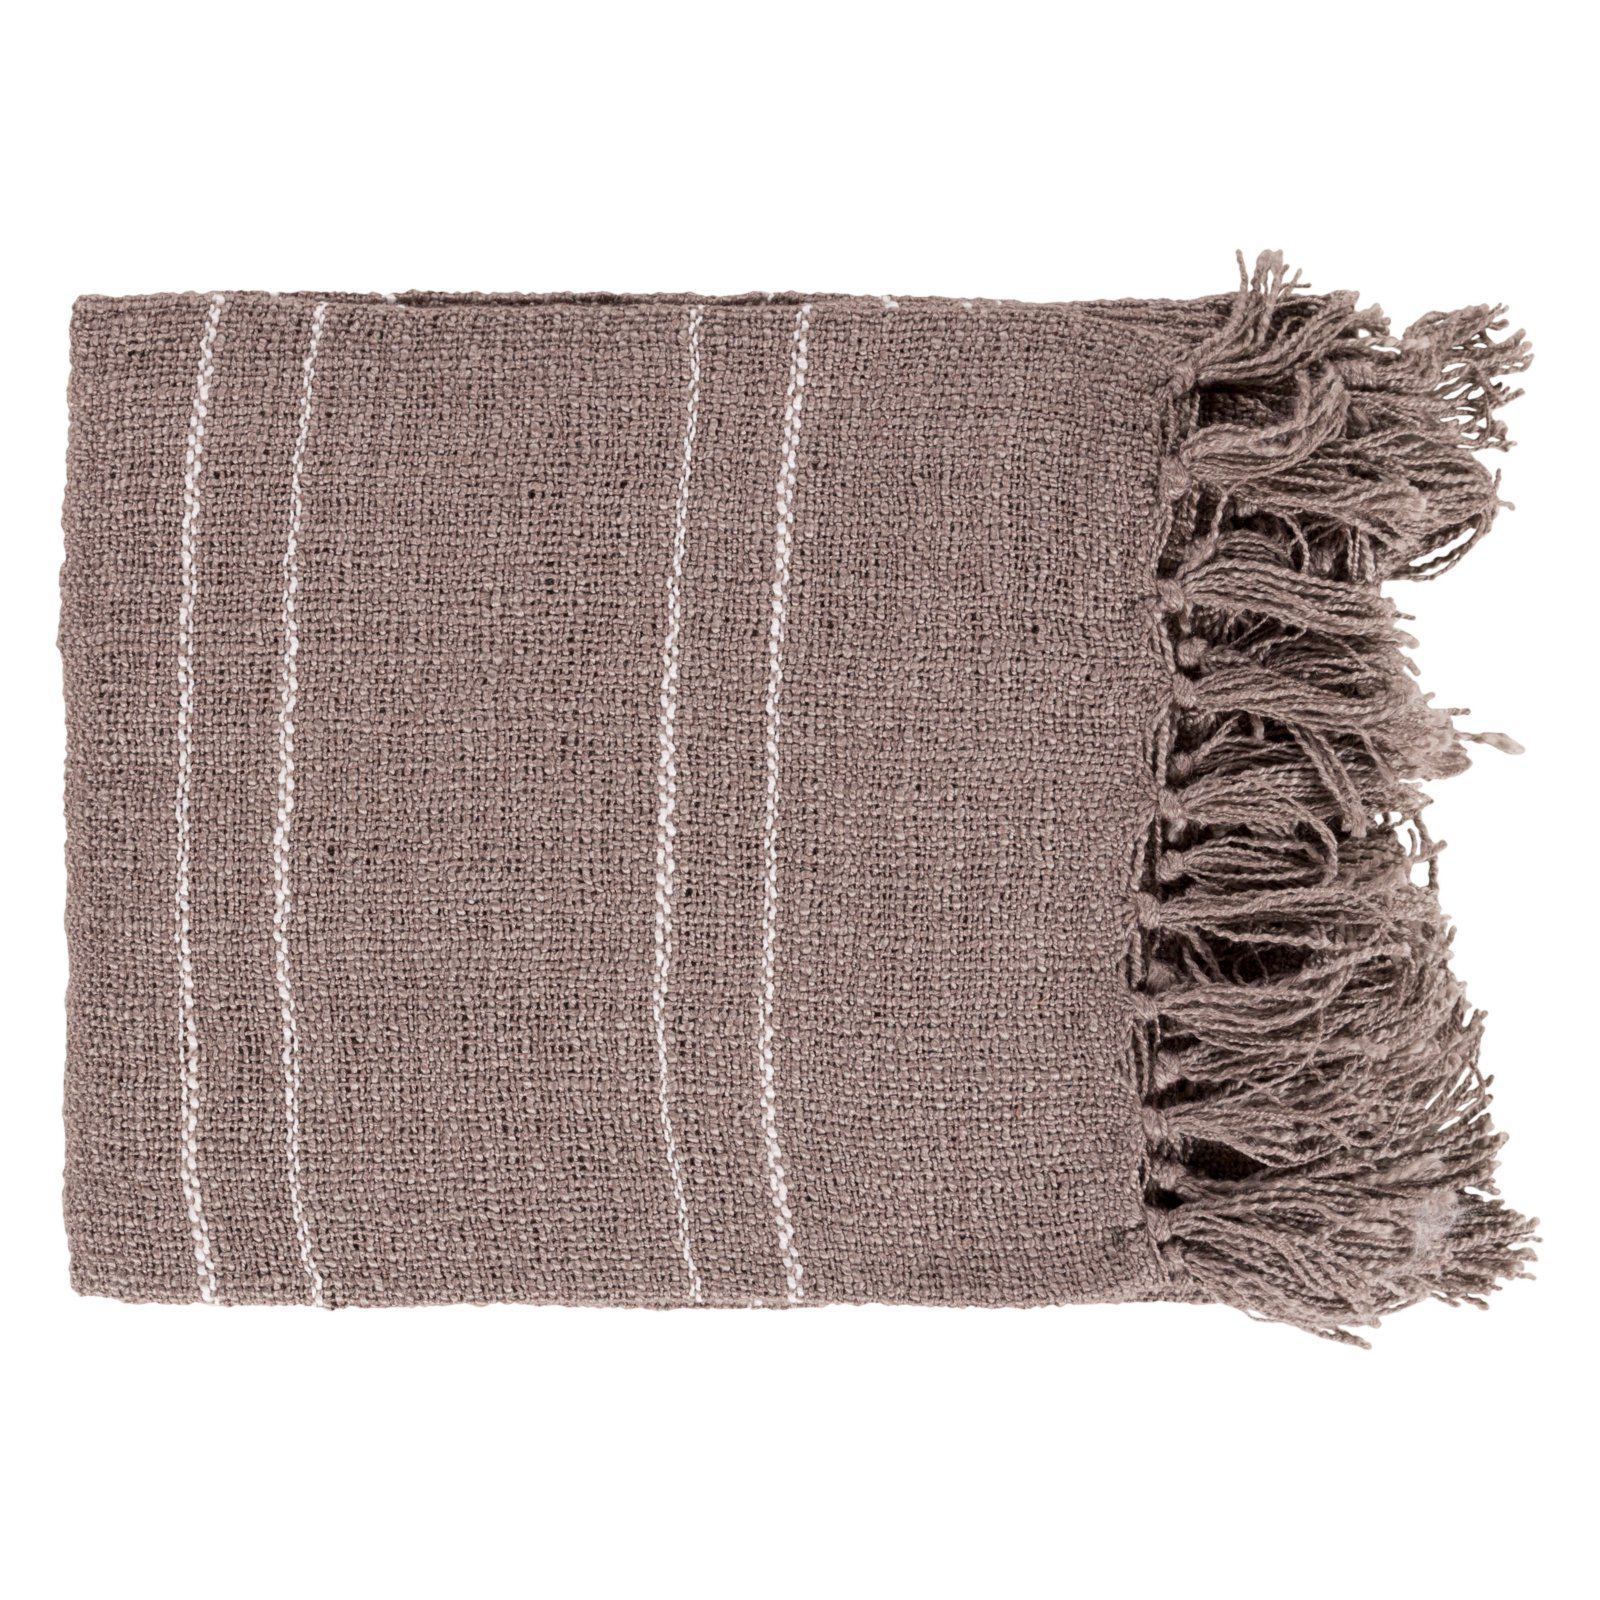 Surya Traveler Acrylic Throw Blanket